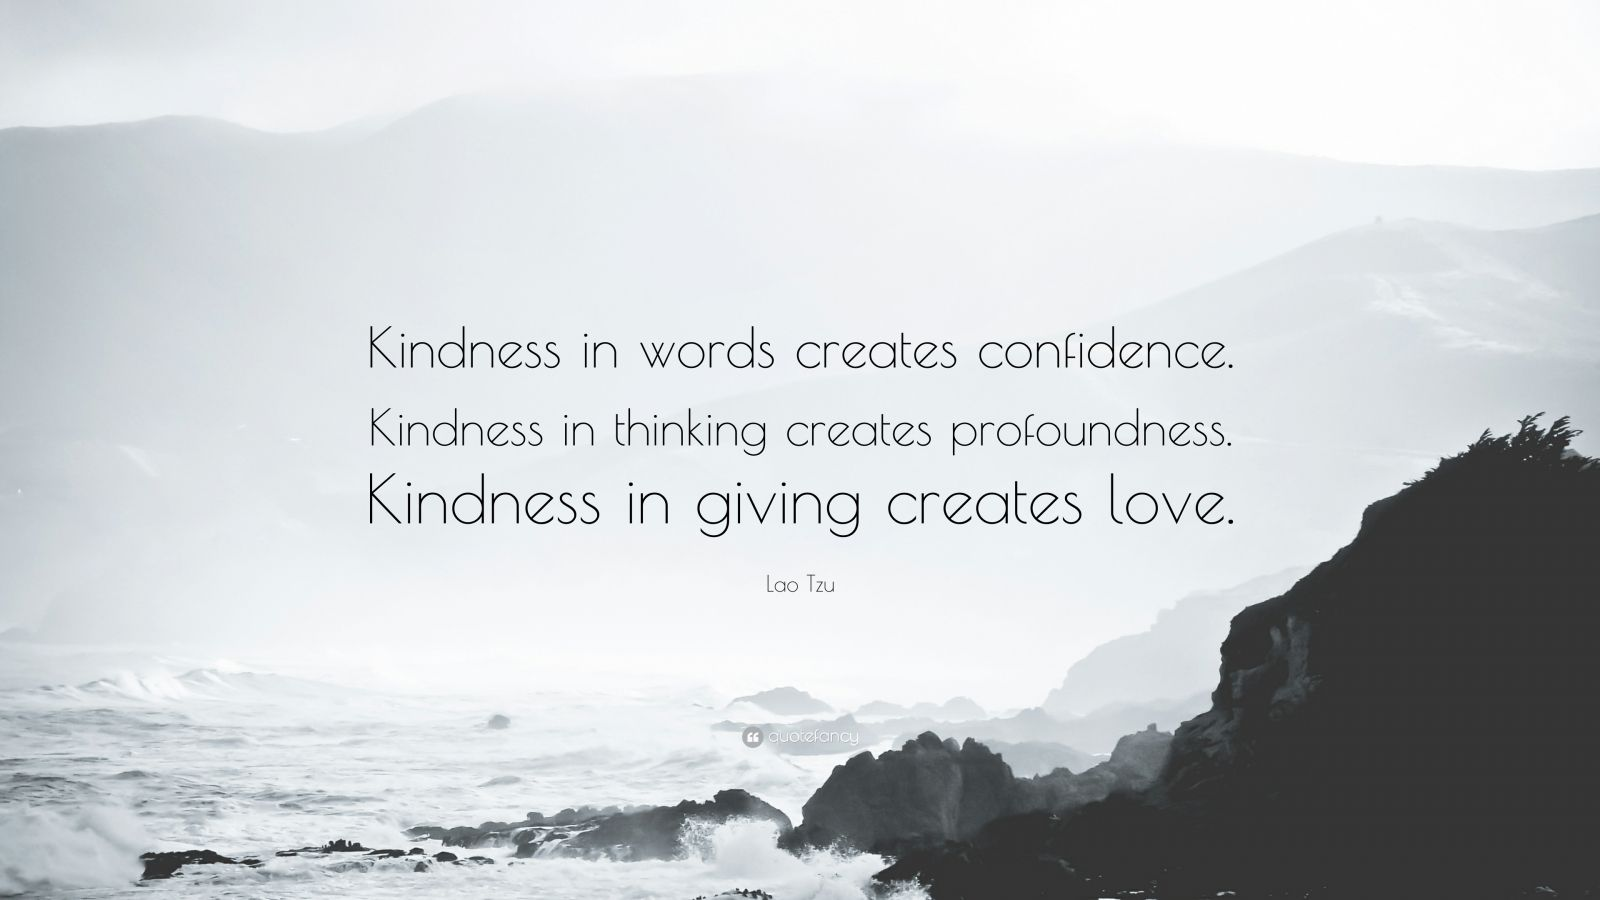 """Lao Tzu Quote: """"Kindness in words creates confidence. Kindness in thinking creates profoundness. Kindness in giving creates love."""""""